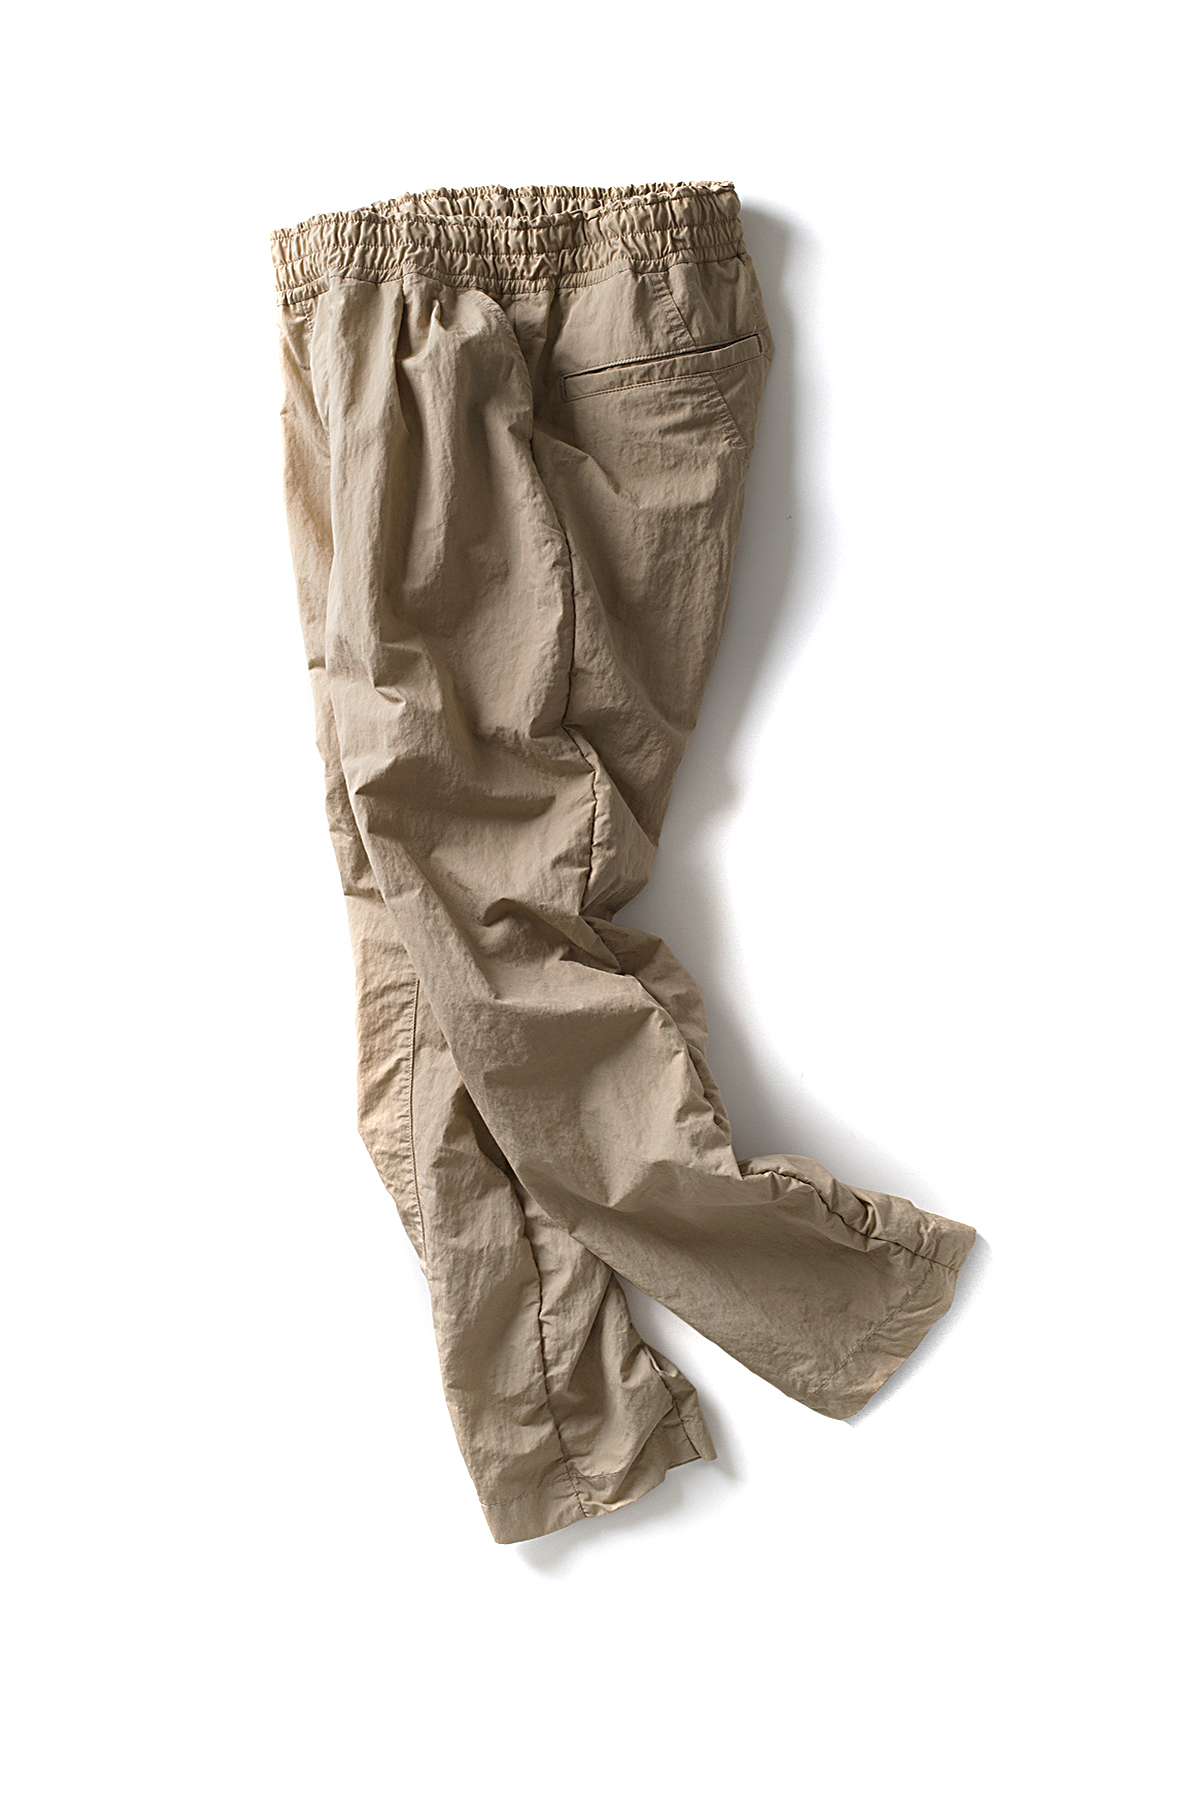 WHITE MOUNTAINEERING : Shearing Sarrouel Pants (Beige)